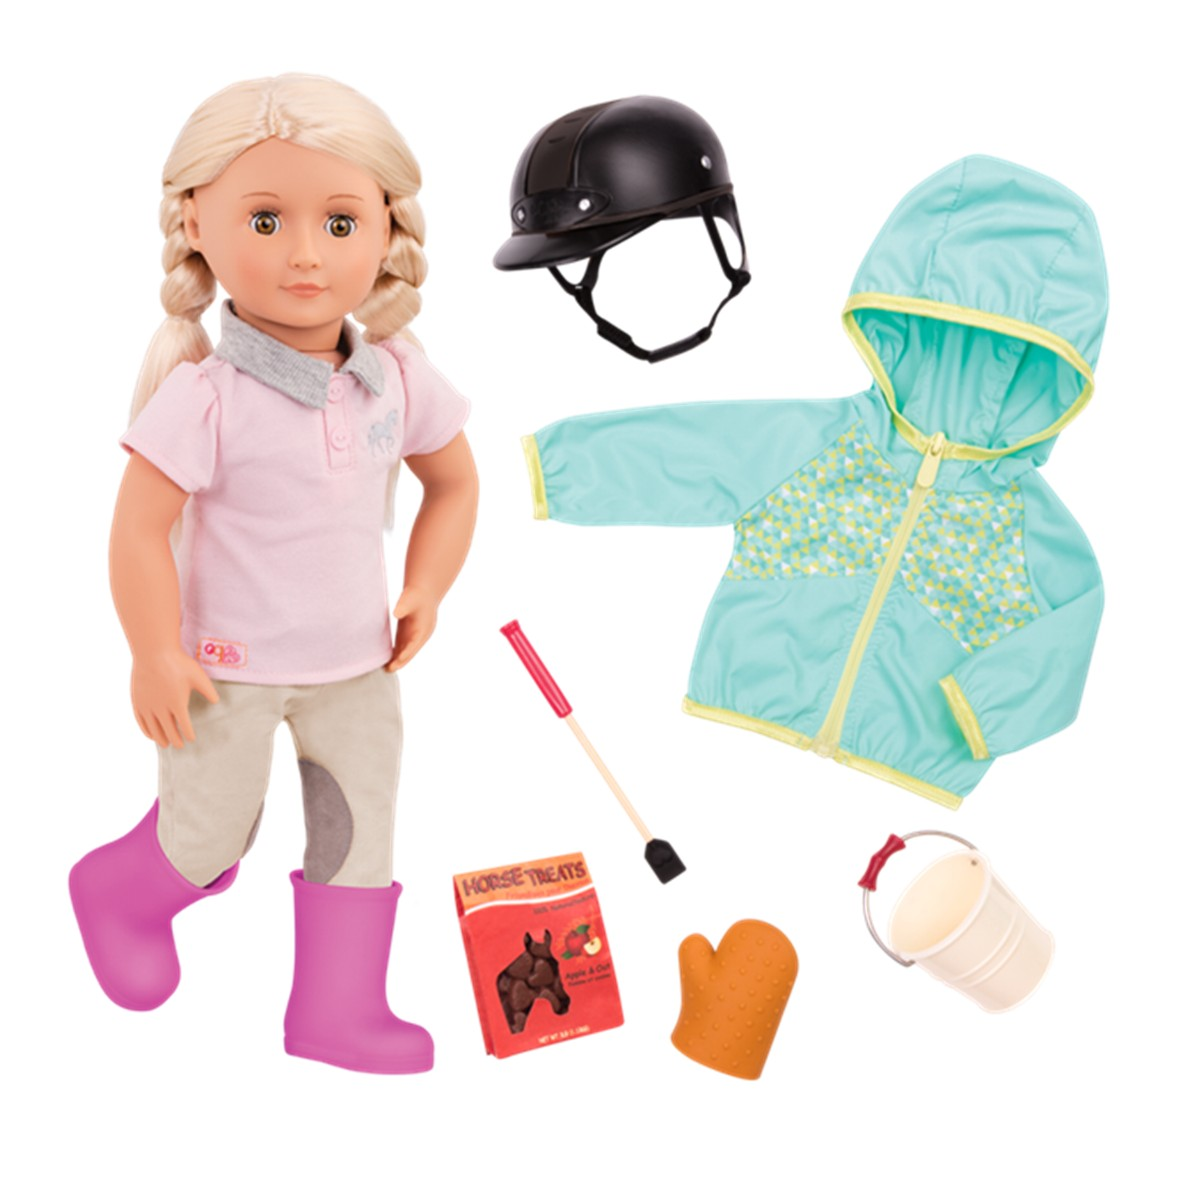 Our Generation - Tamera luxury doll (731192)